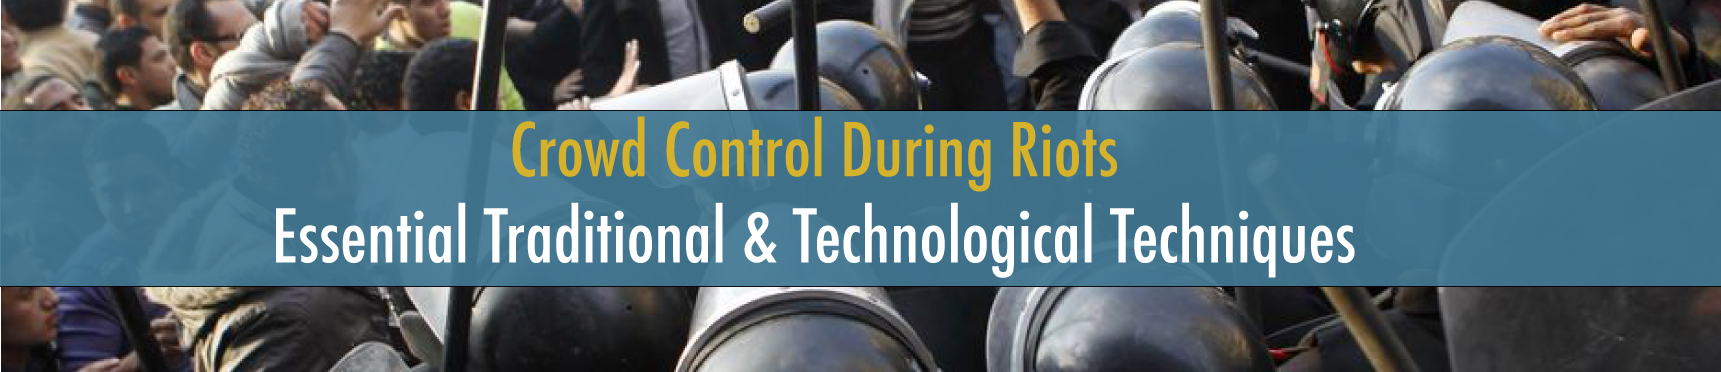 Crowd Control During Riots: Essential Traditional & Technological Techniques